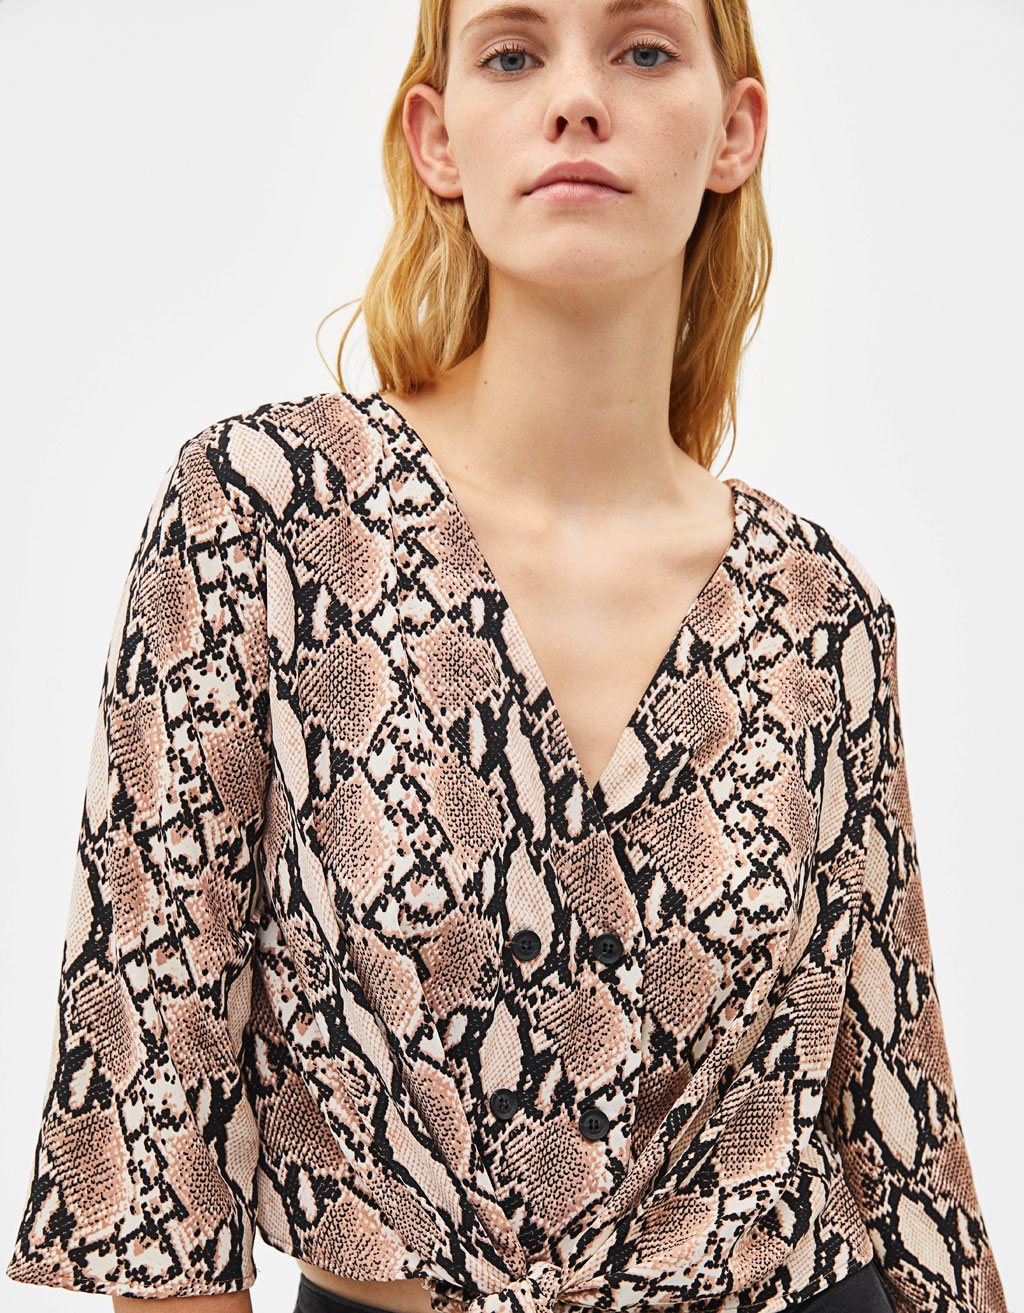 Snakeskin print knotted shirt